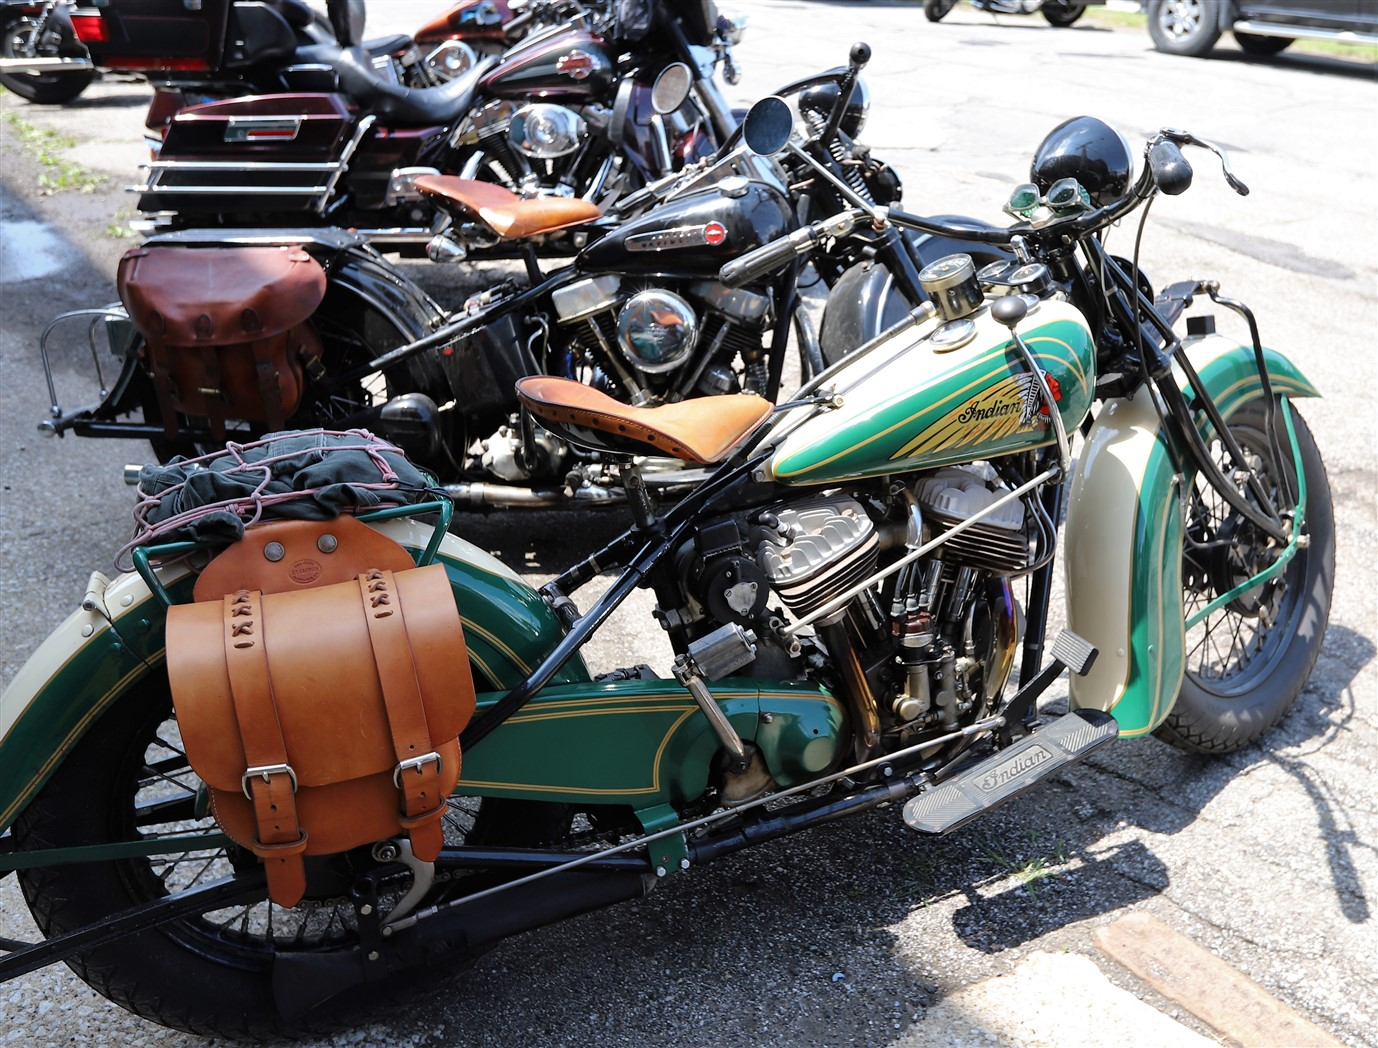 2018 07 28 83 Cleveland Fuel Motorcycle & Art Show.jpg